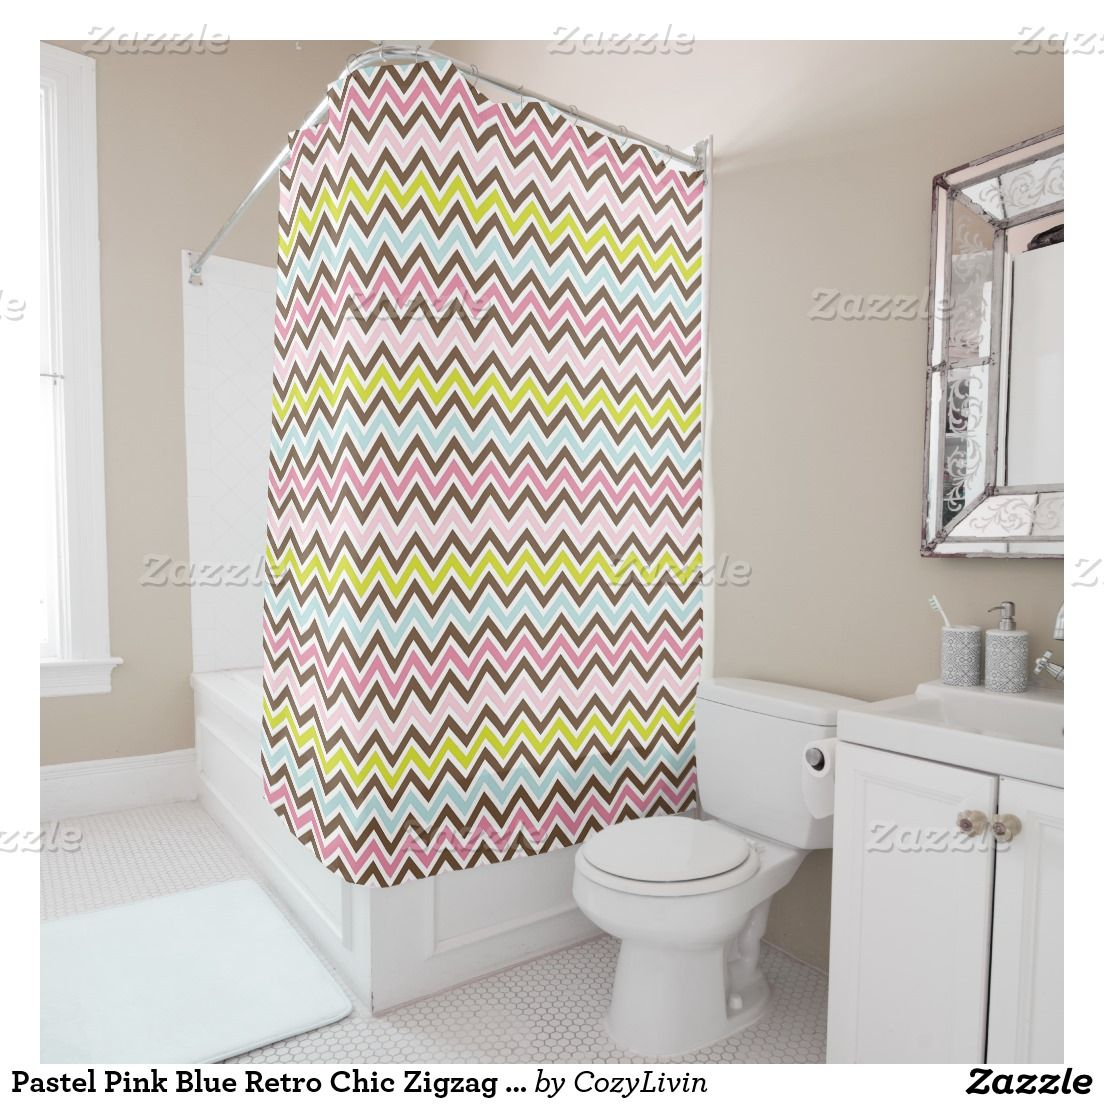 Pastel Pink Blue Retro Chic Zigzag Stripes Pattern Shower Curtain Ornate Elegant And Funky Hipster Motif For The Artistic Interior Designer